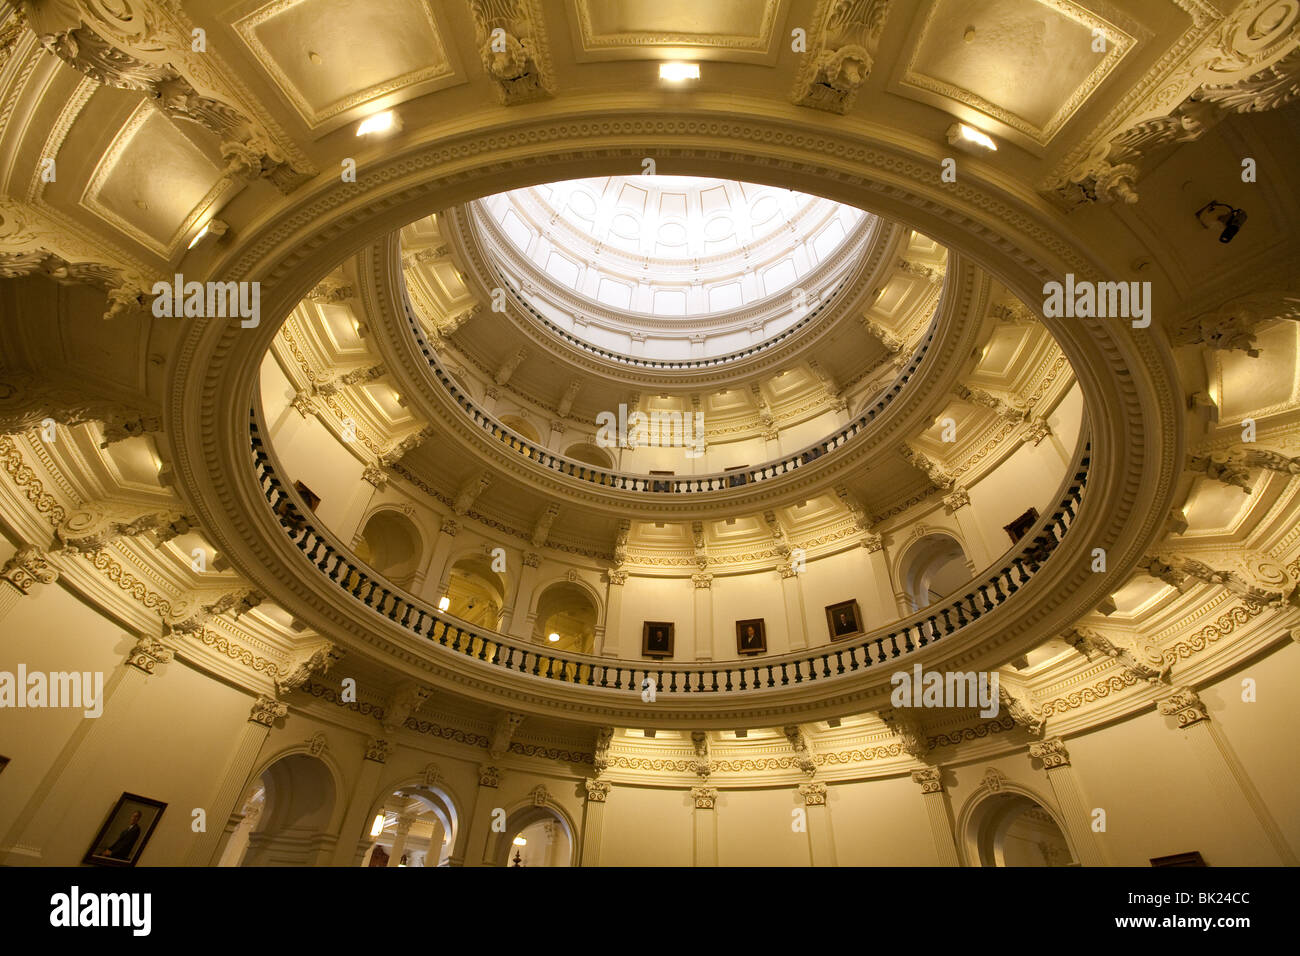 Interior view of texas capitol dome in austin texas stock photo interior view of texas capitol dome in austin texas arubaitofo Choice Image